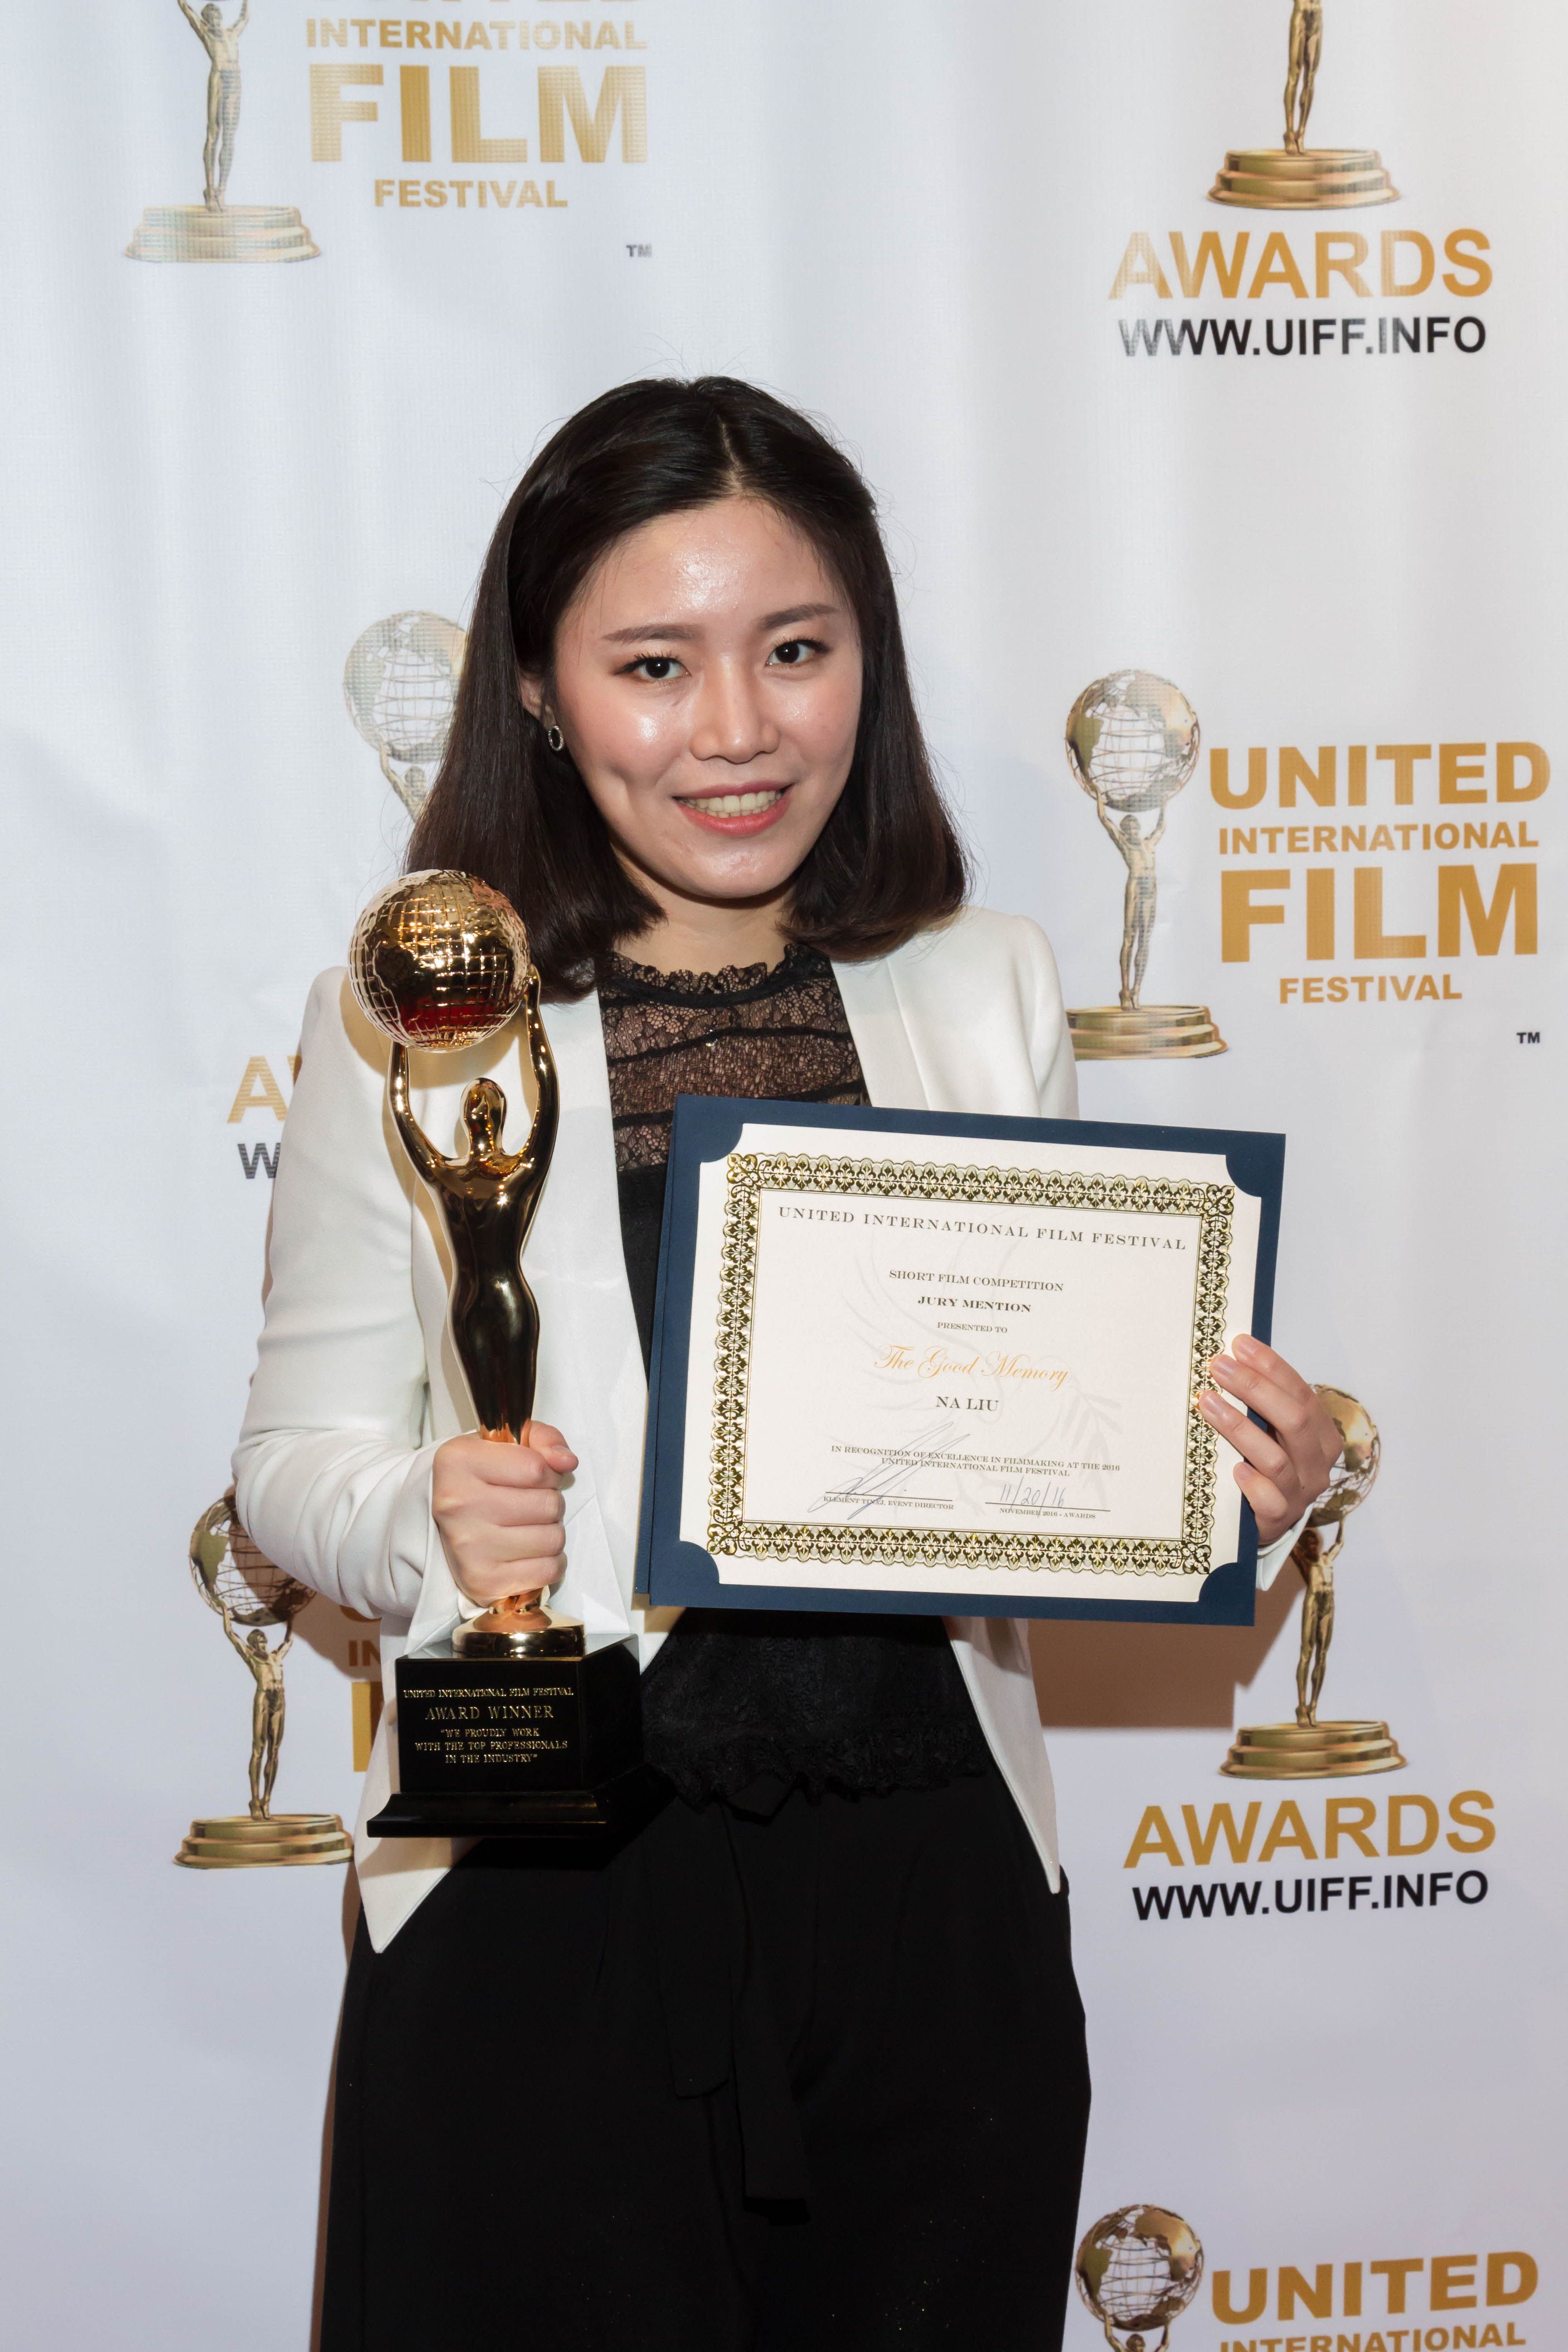 United International Film Festival